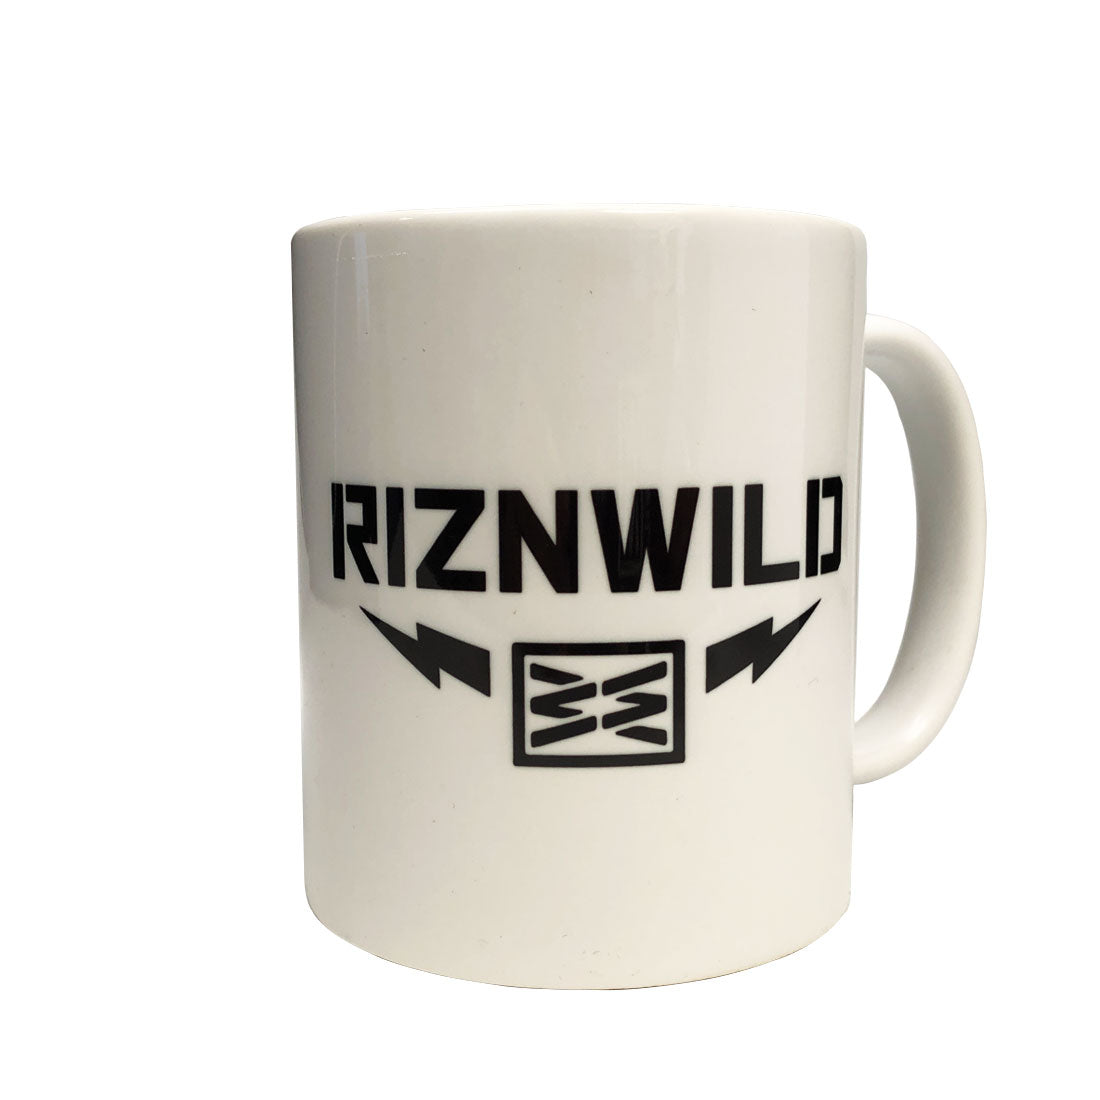 RIZNWILD | back of the mug lightning bolts logo black and white